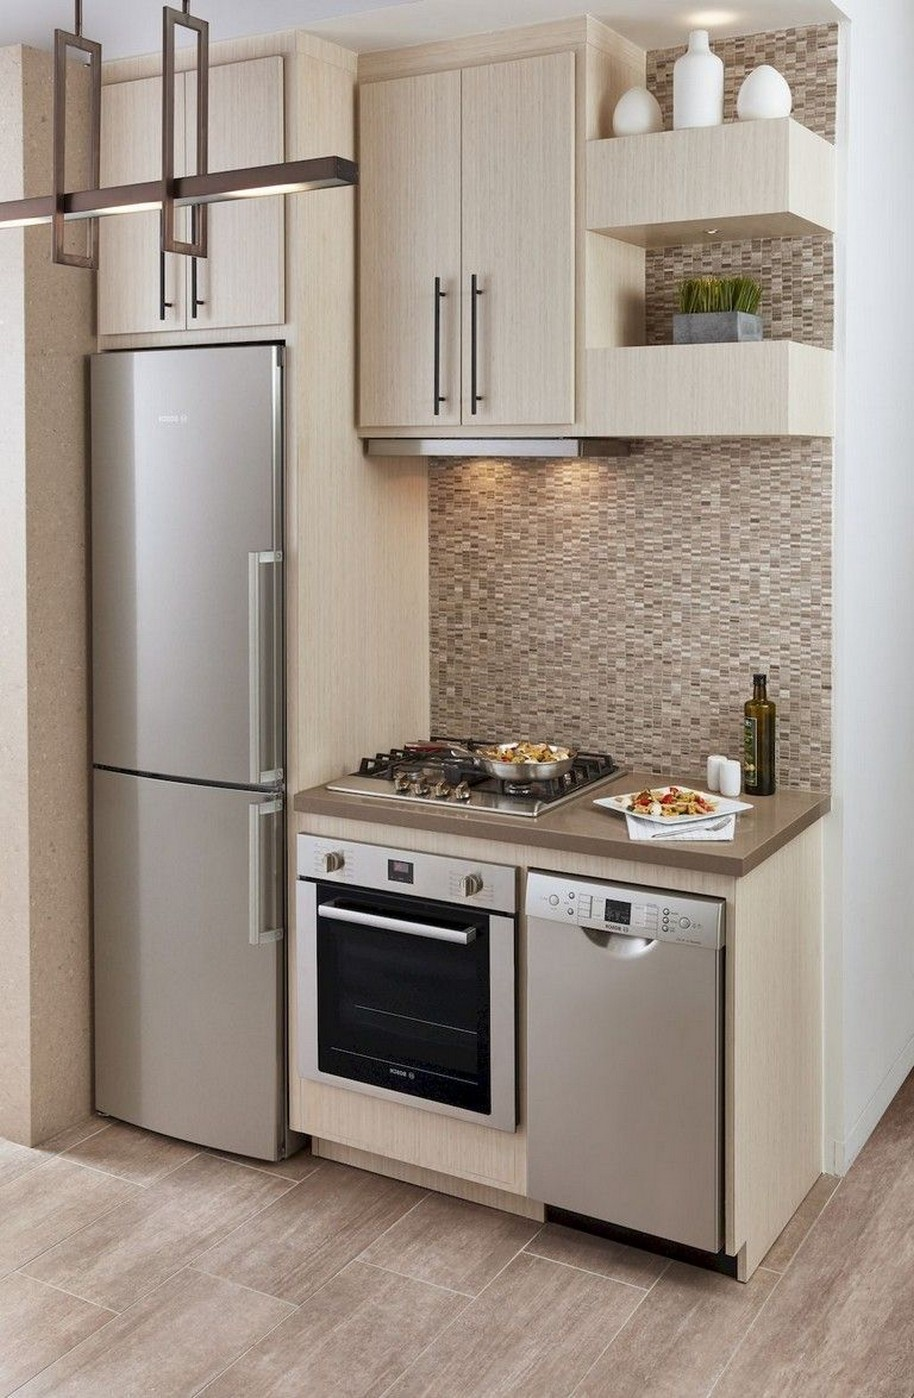 86 Some Small Kitchen Ideas To Help You Do Up Your Kitchen 68